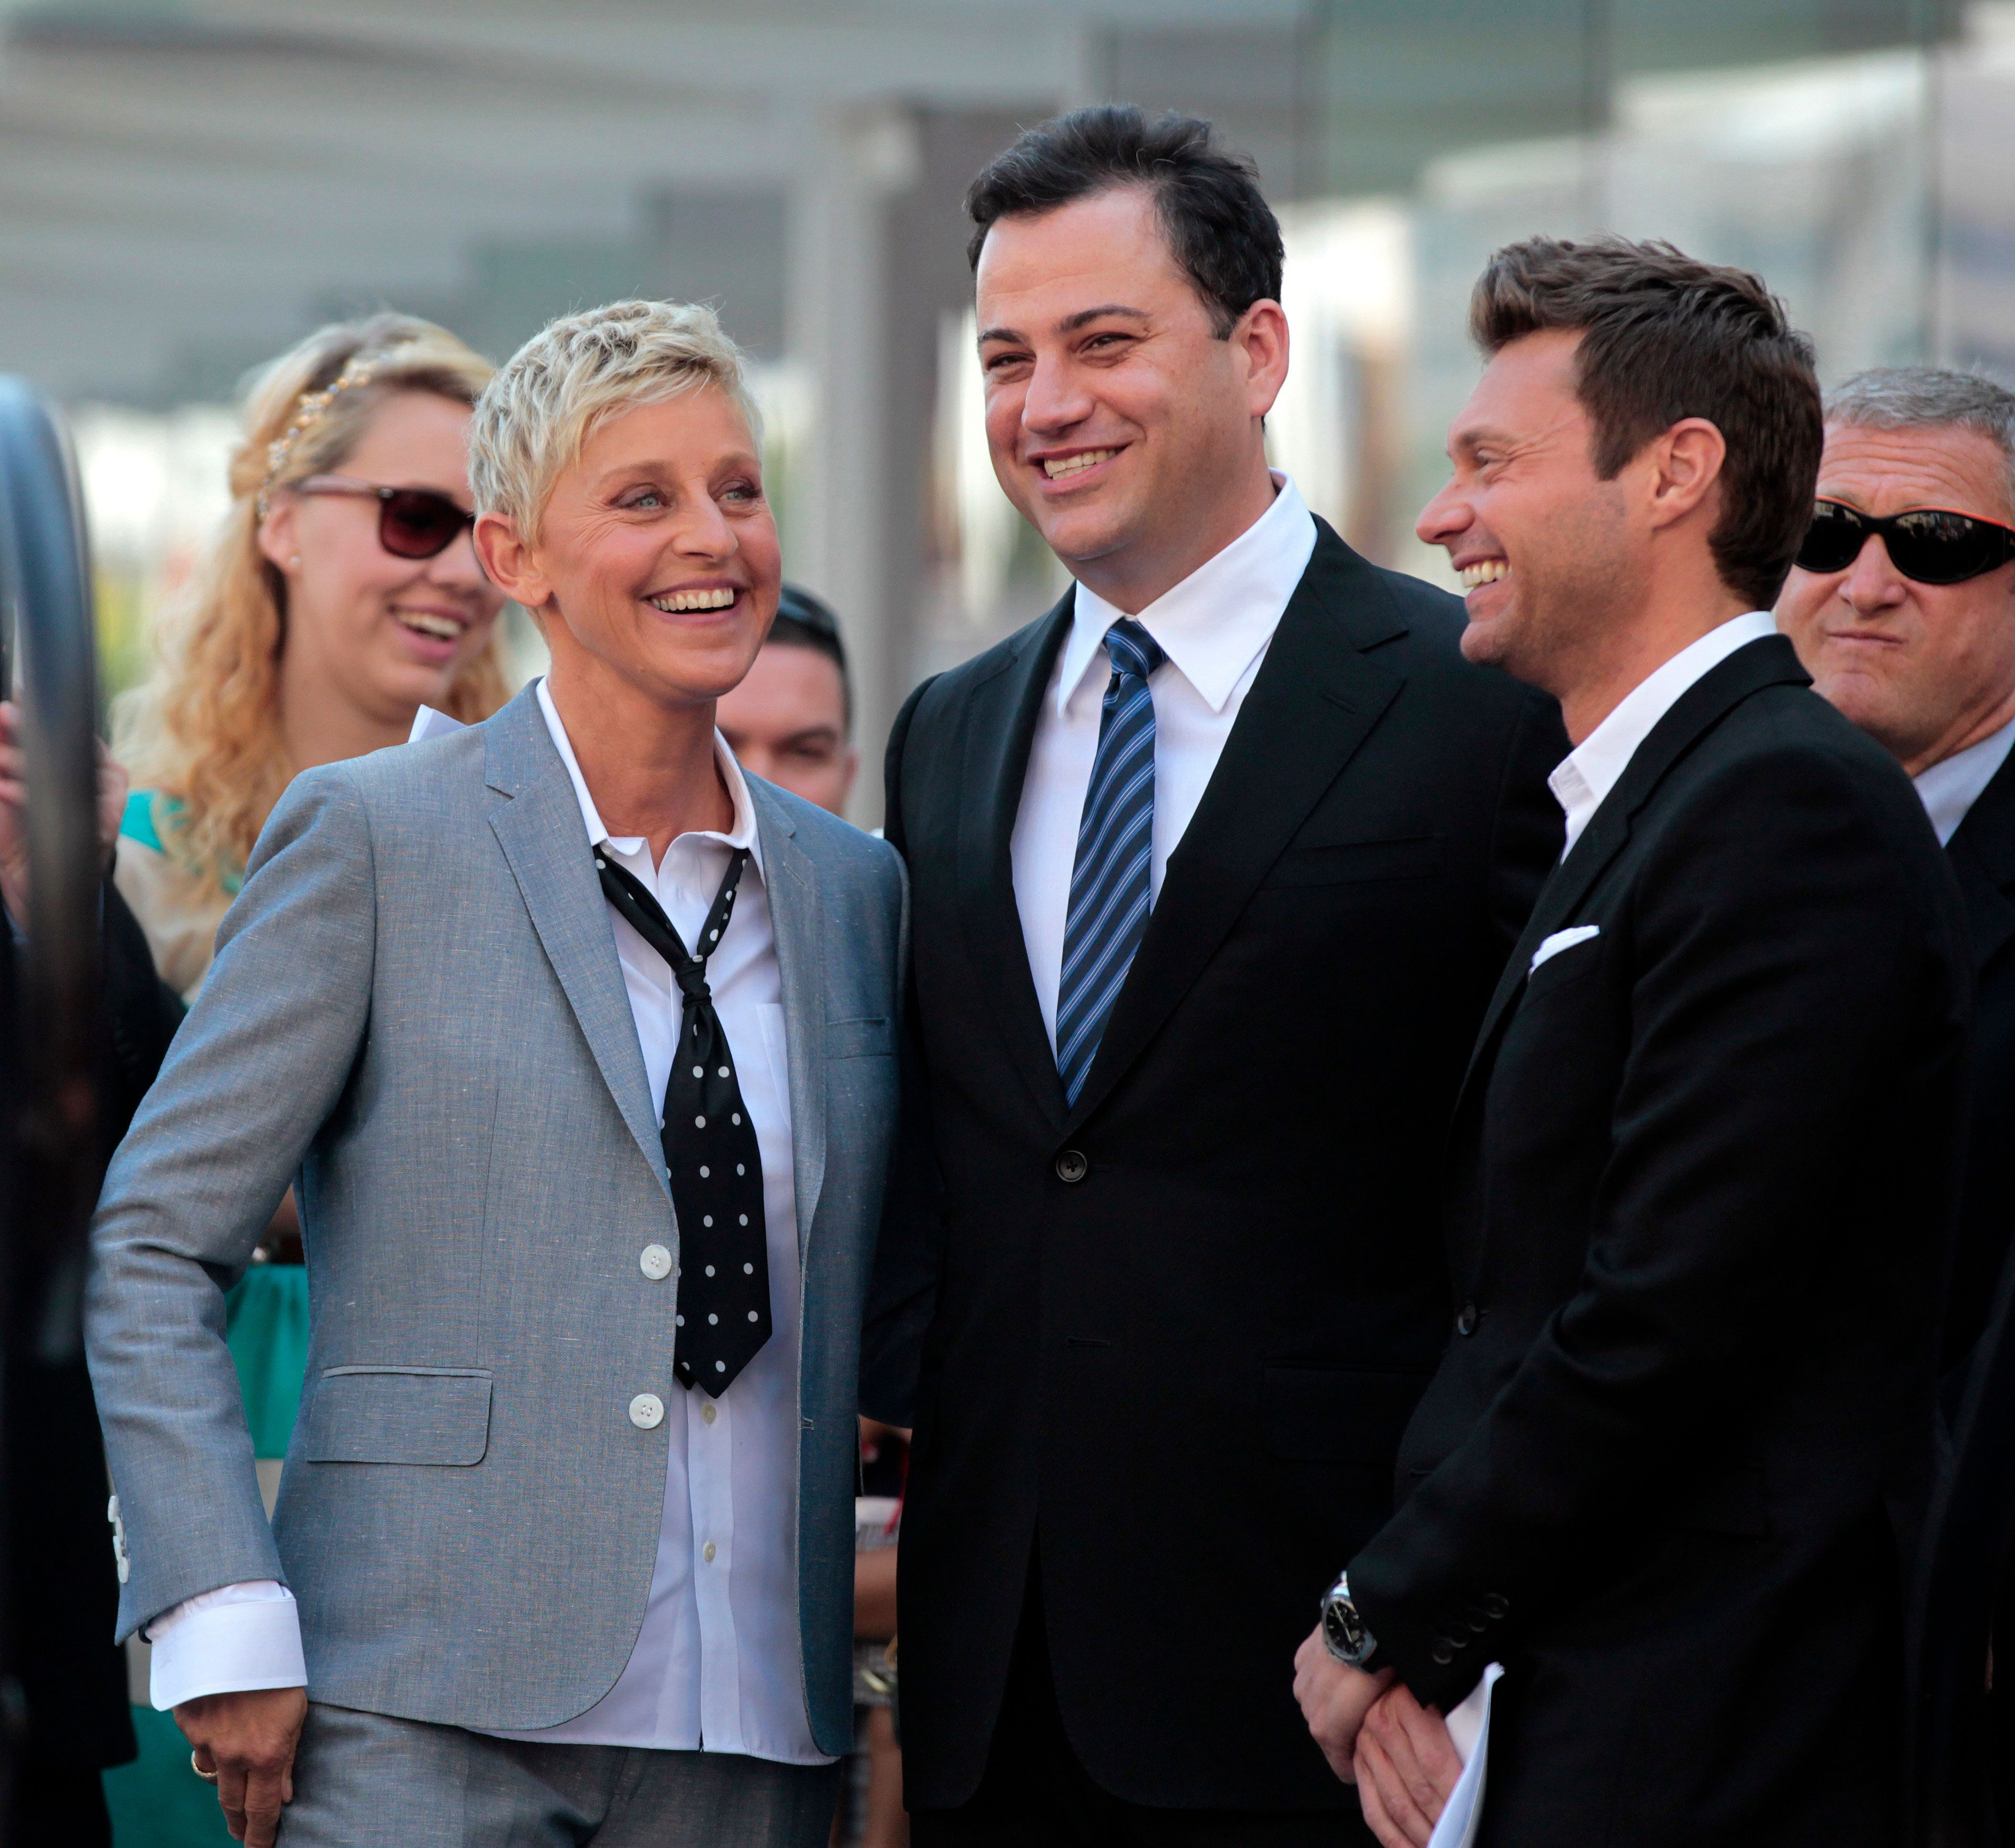 Television personality Ellen DeGeneres smiles with television hosts Jimmy Kimmel (C) and Ryan Seacrest before her star was unveiled on the Walk of Fame in Hollywood, California September 4, 2012. REUTERS/Mario Anzuoni (UNITED STATES - Tags: ENTERTAINMENT PROFILE)